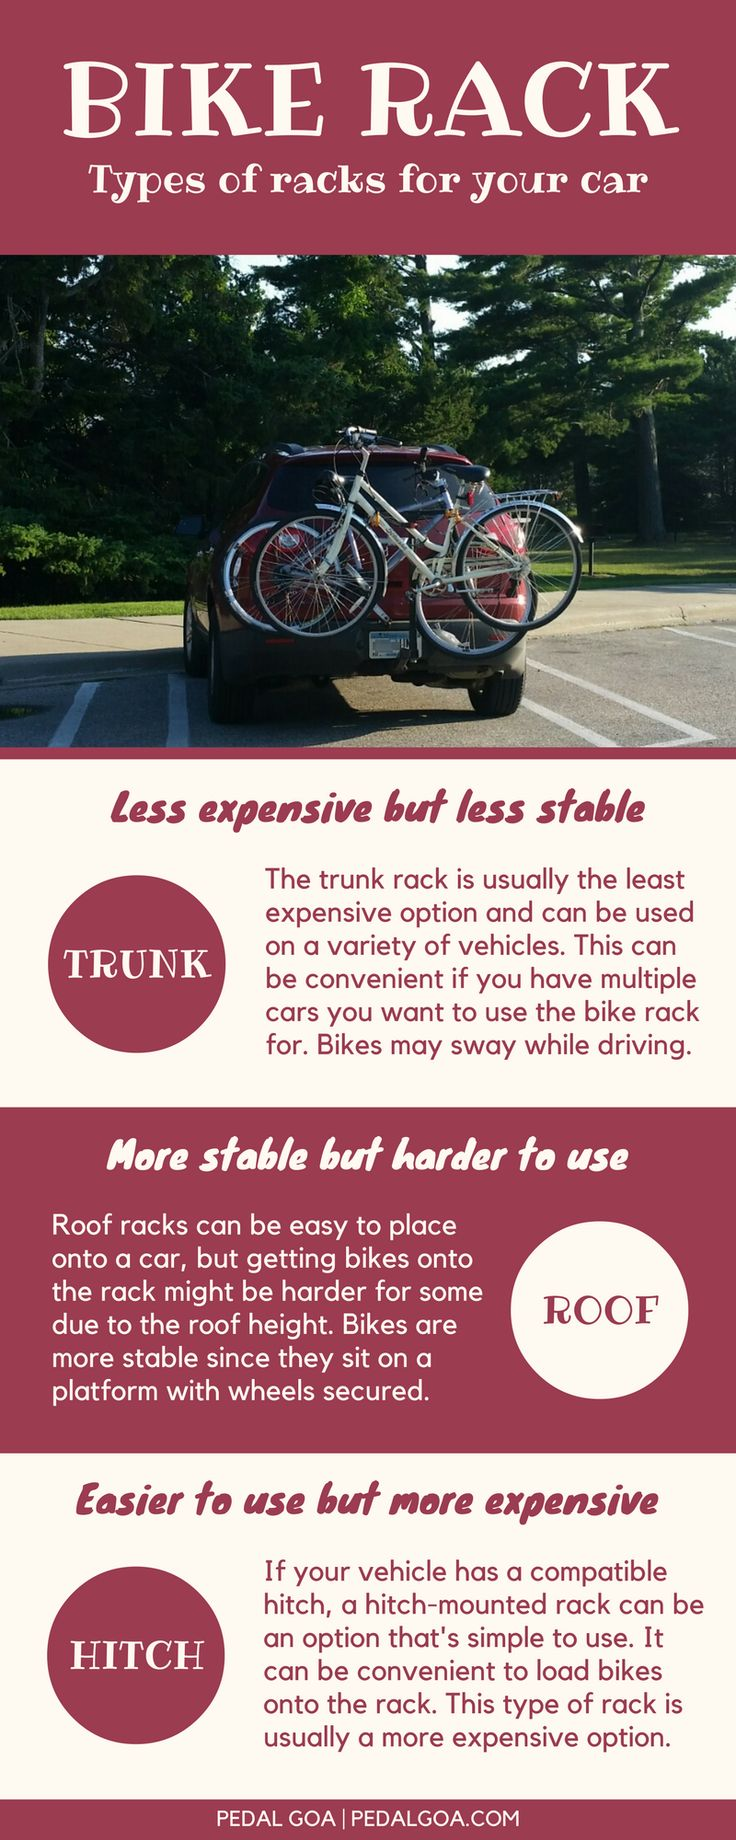 Is the best bike rack for your car a trunk rack, roof rack, or hitch rack? Here are some tips to help you choose the best bike rack for your biking fun and outdoor travel adventures! Infographic